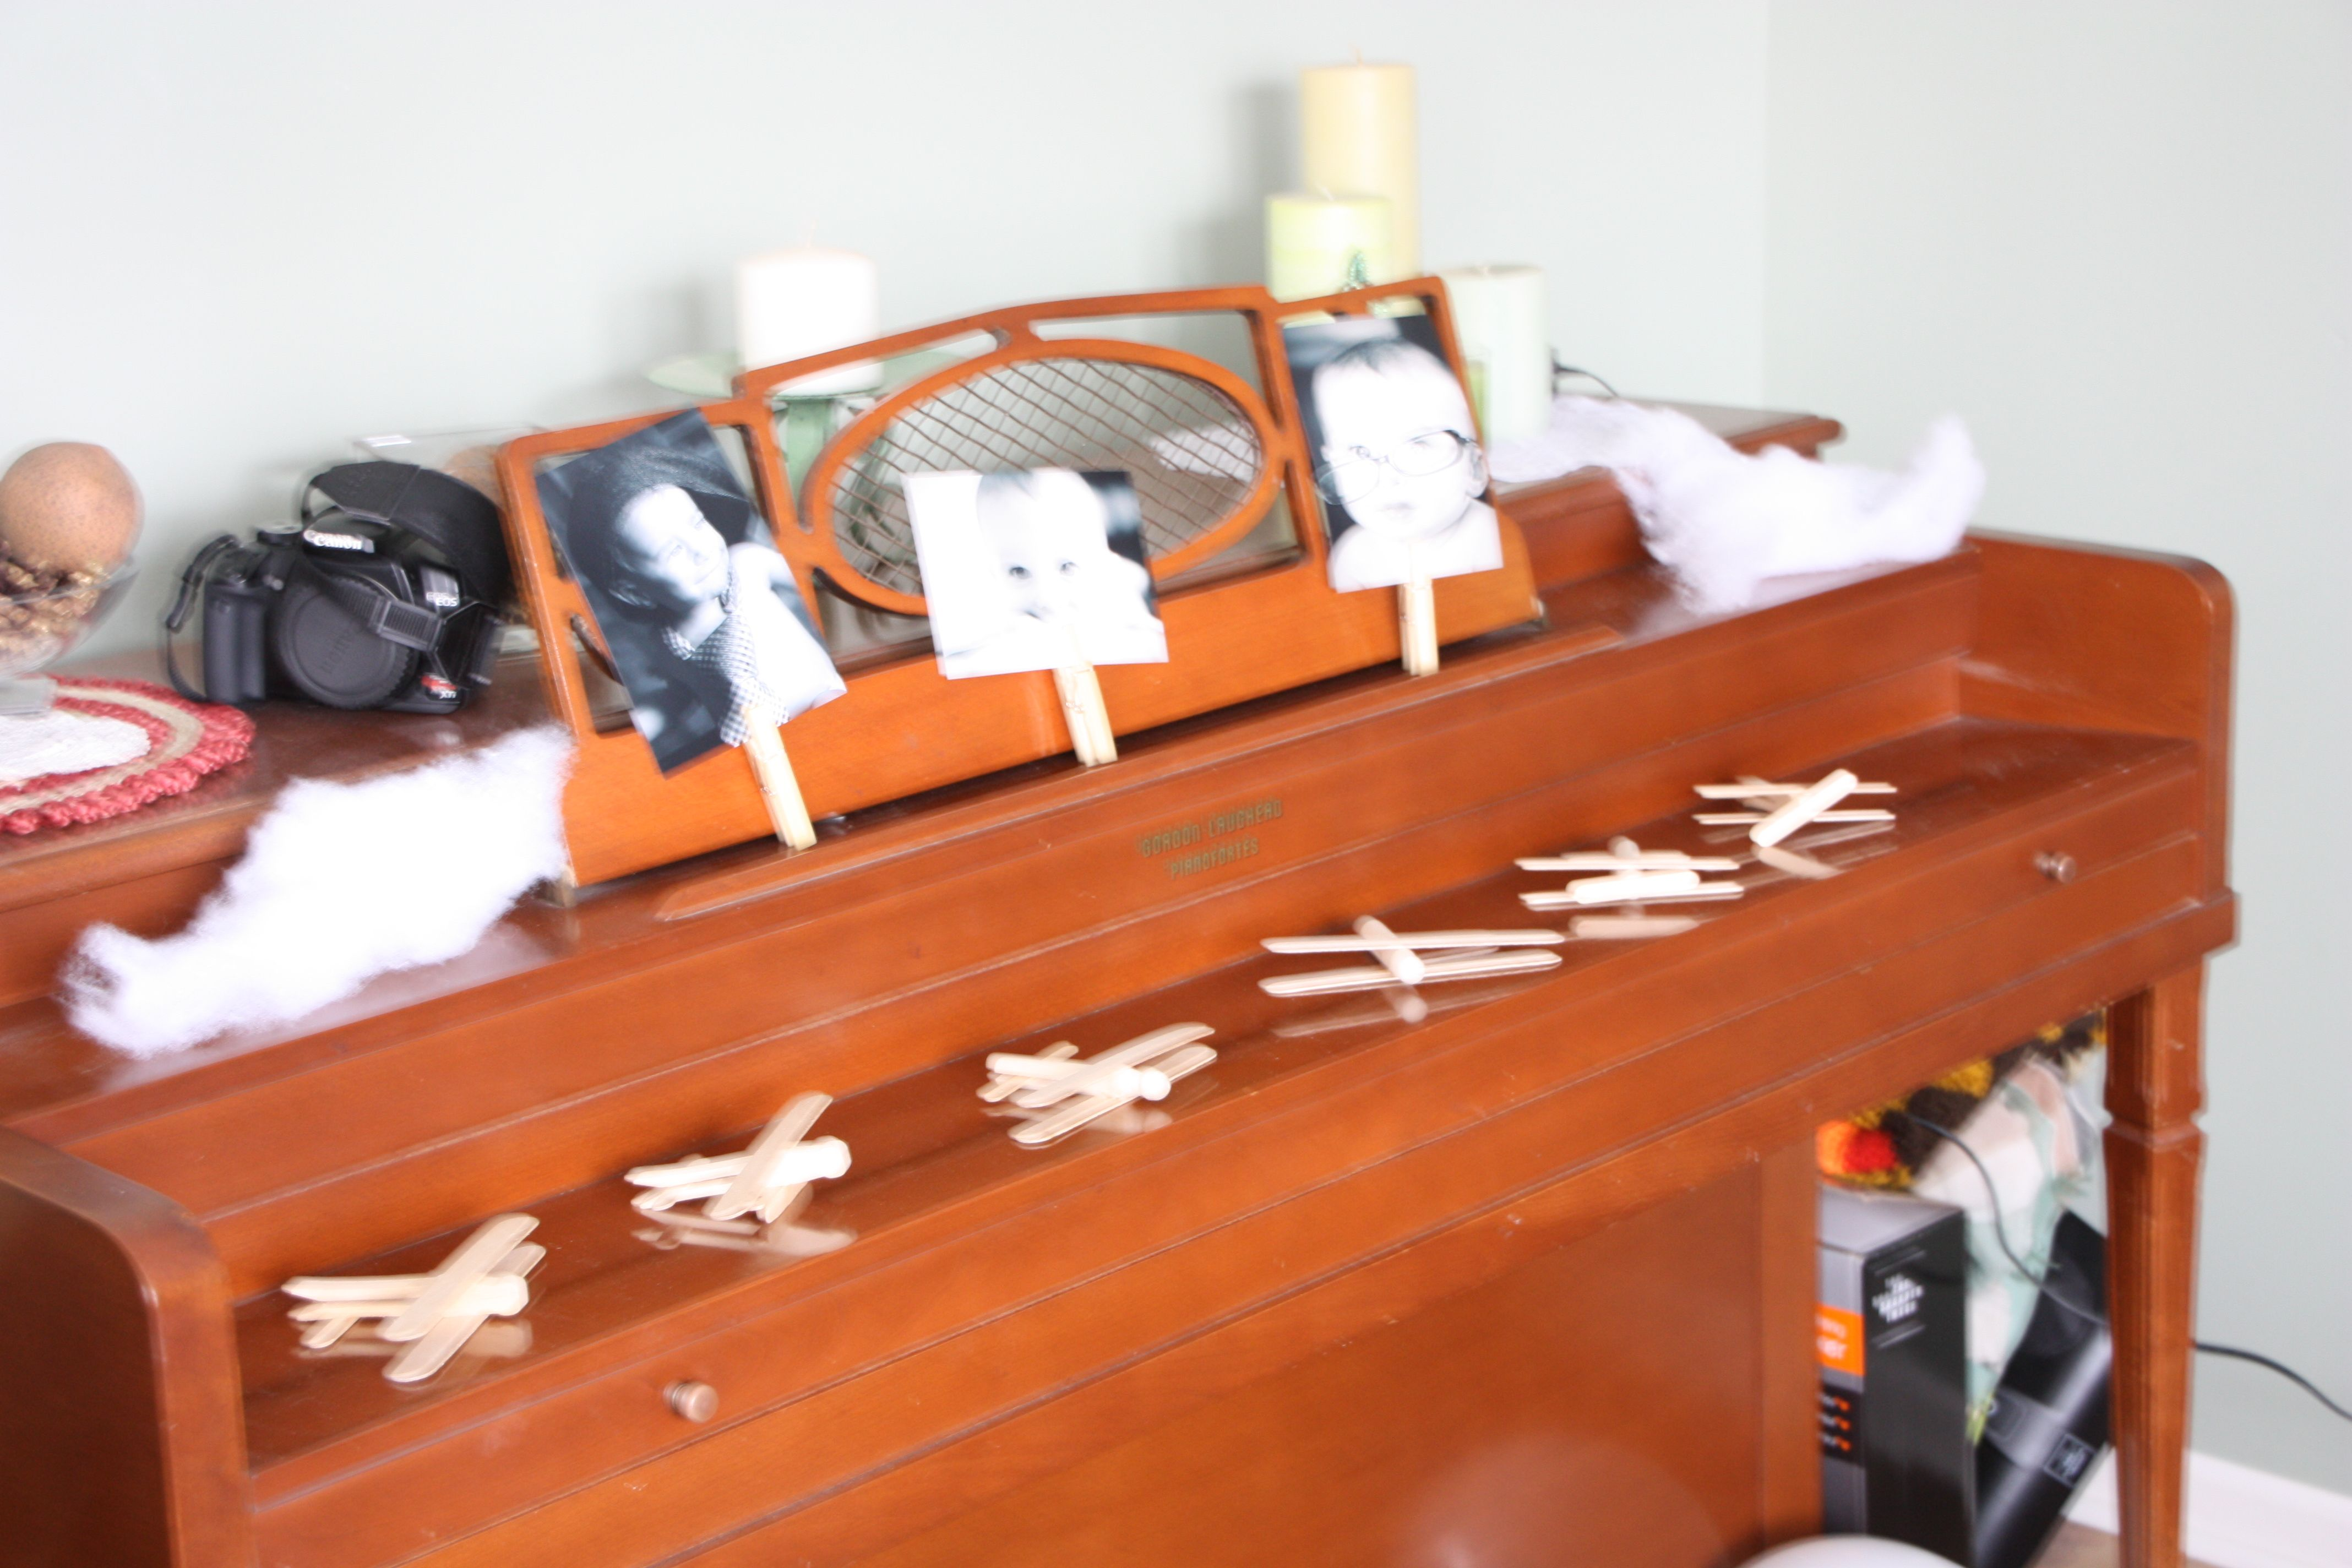 I made these airplanes out of popsicle sticks and clothes pins.  I made several but also put out the supplies for the kids to make their own.  Also on the kids table were markers so they could color them.